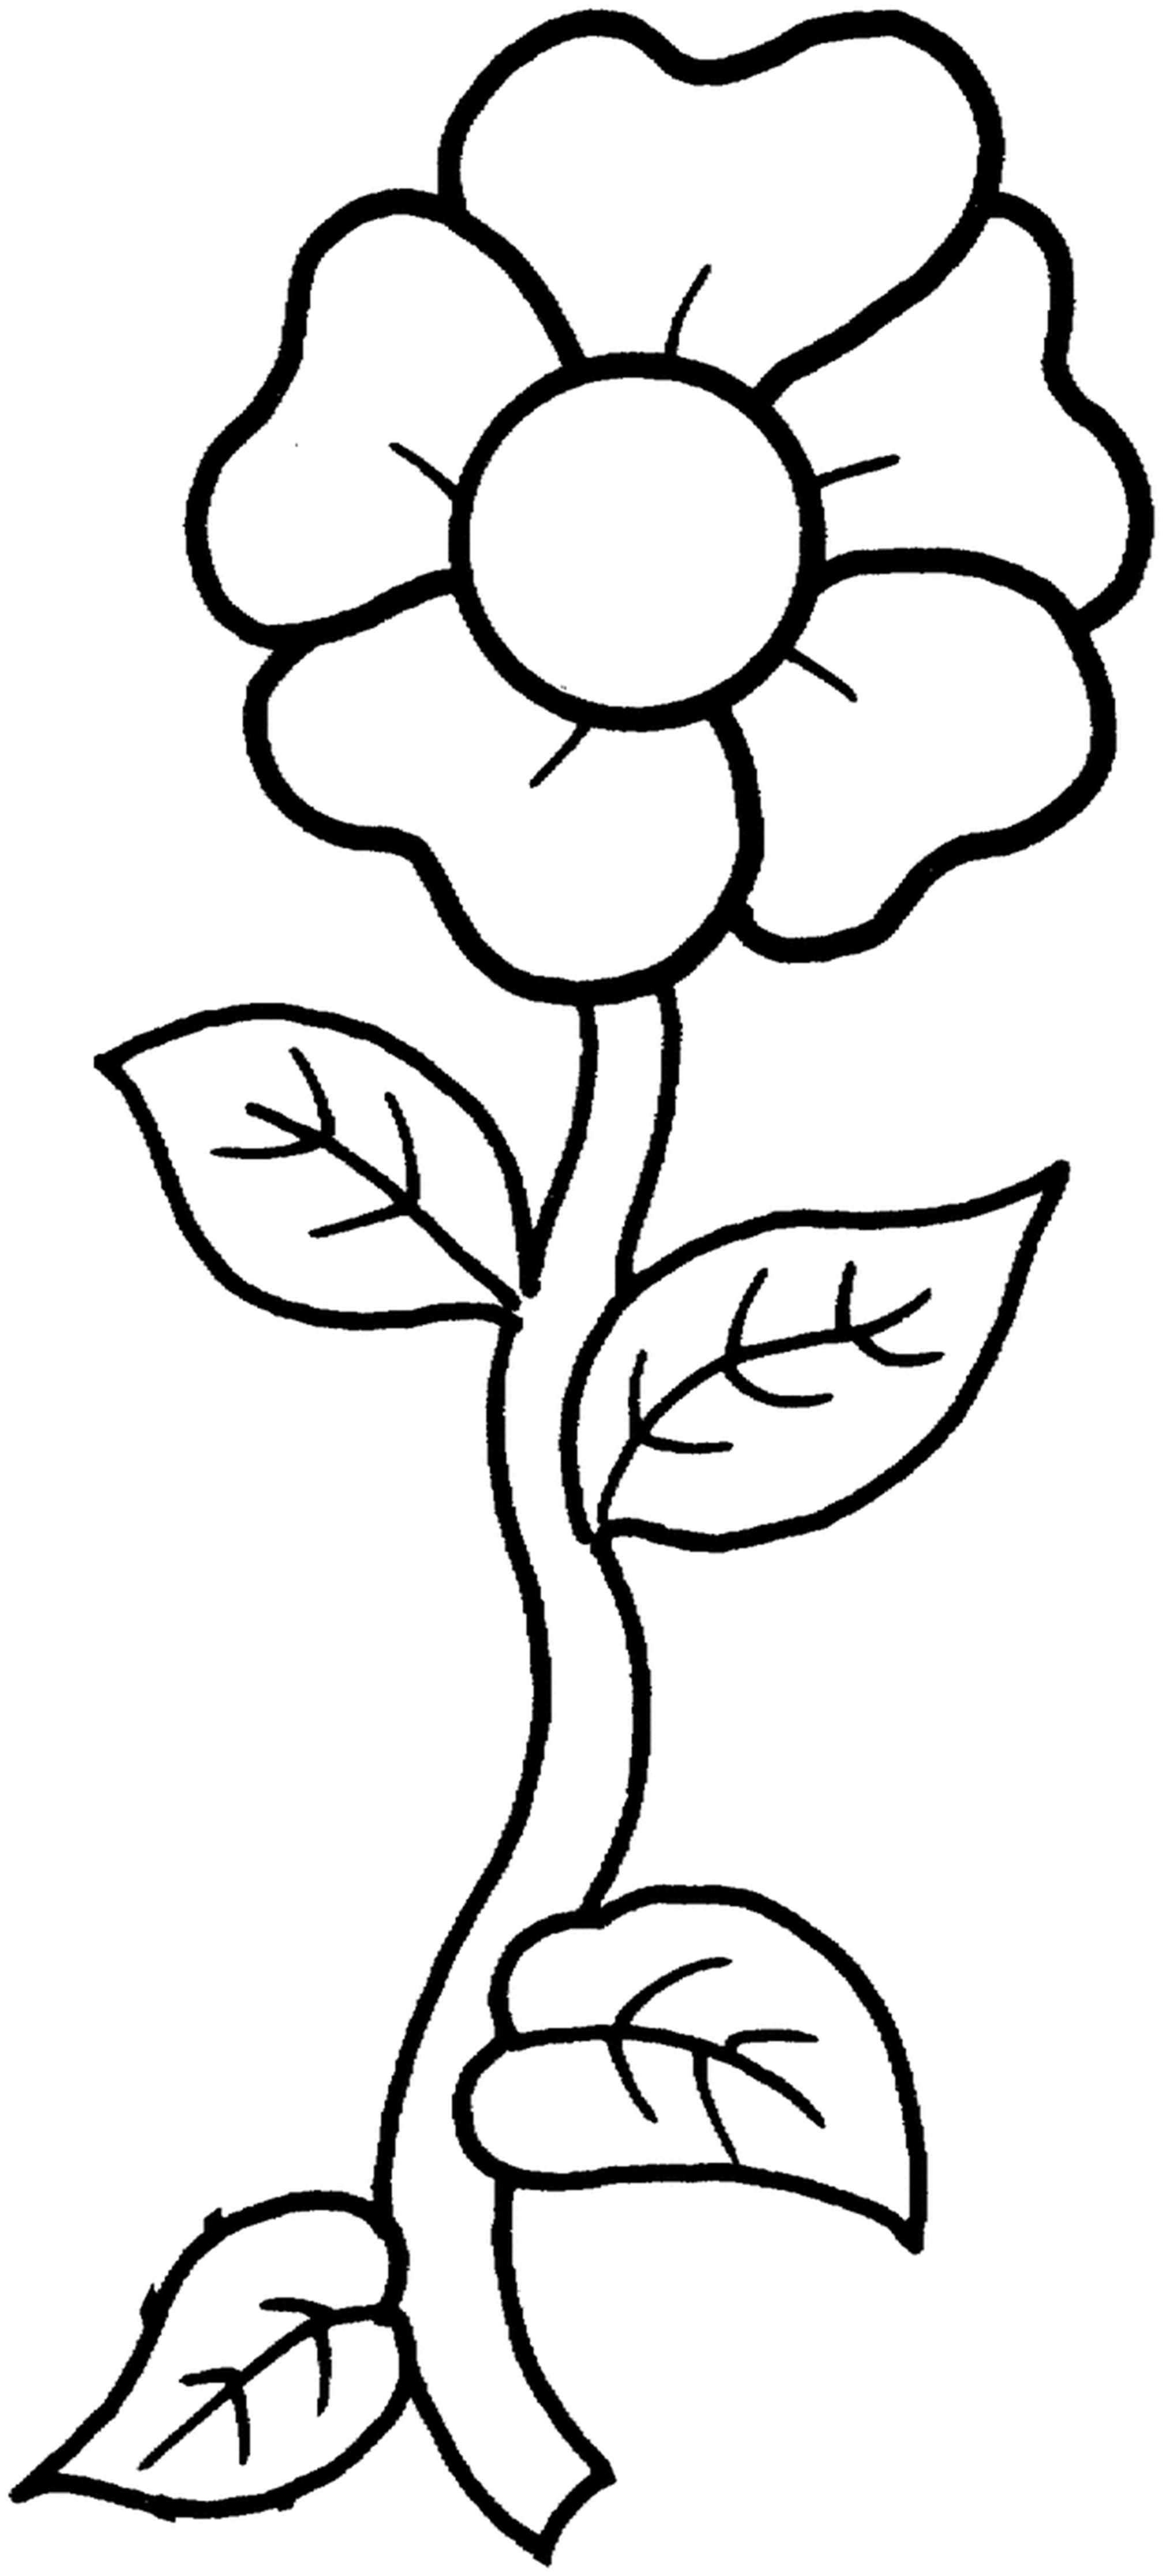 orchid coloring pages flower coloring pages coloring pages to download and print pages orchid coloring